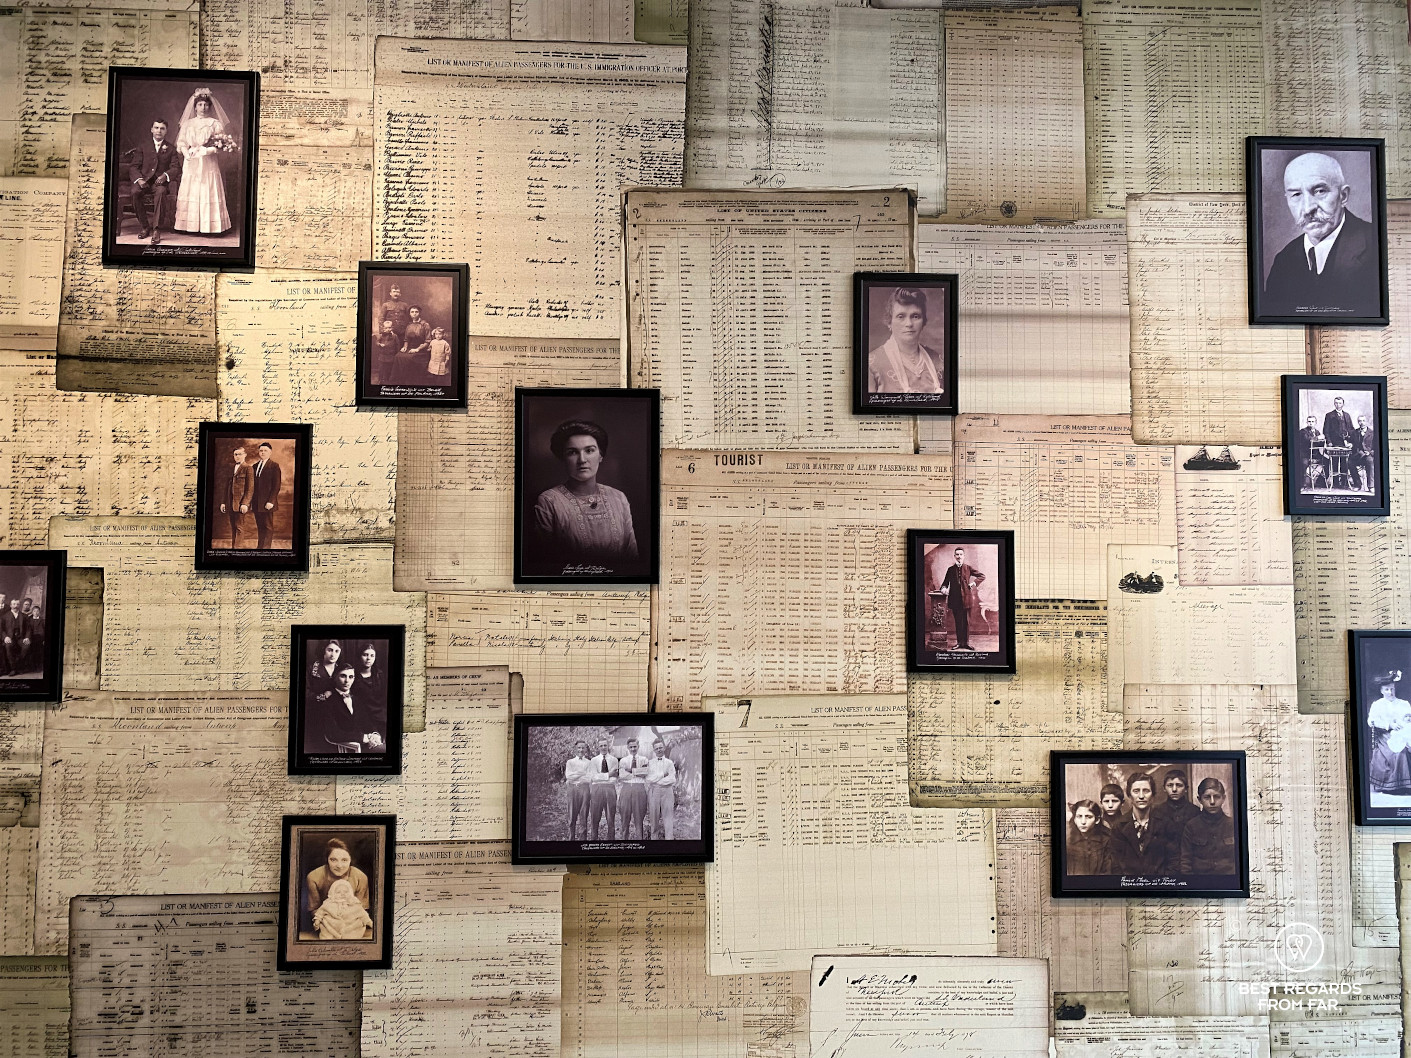 Lives of migrnats at the Red Star Line Museum, Antwerp, Belgium